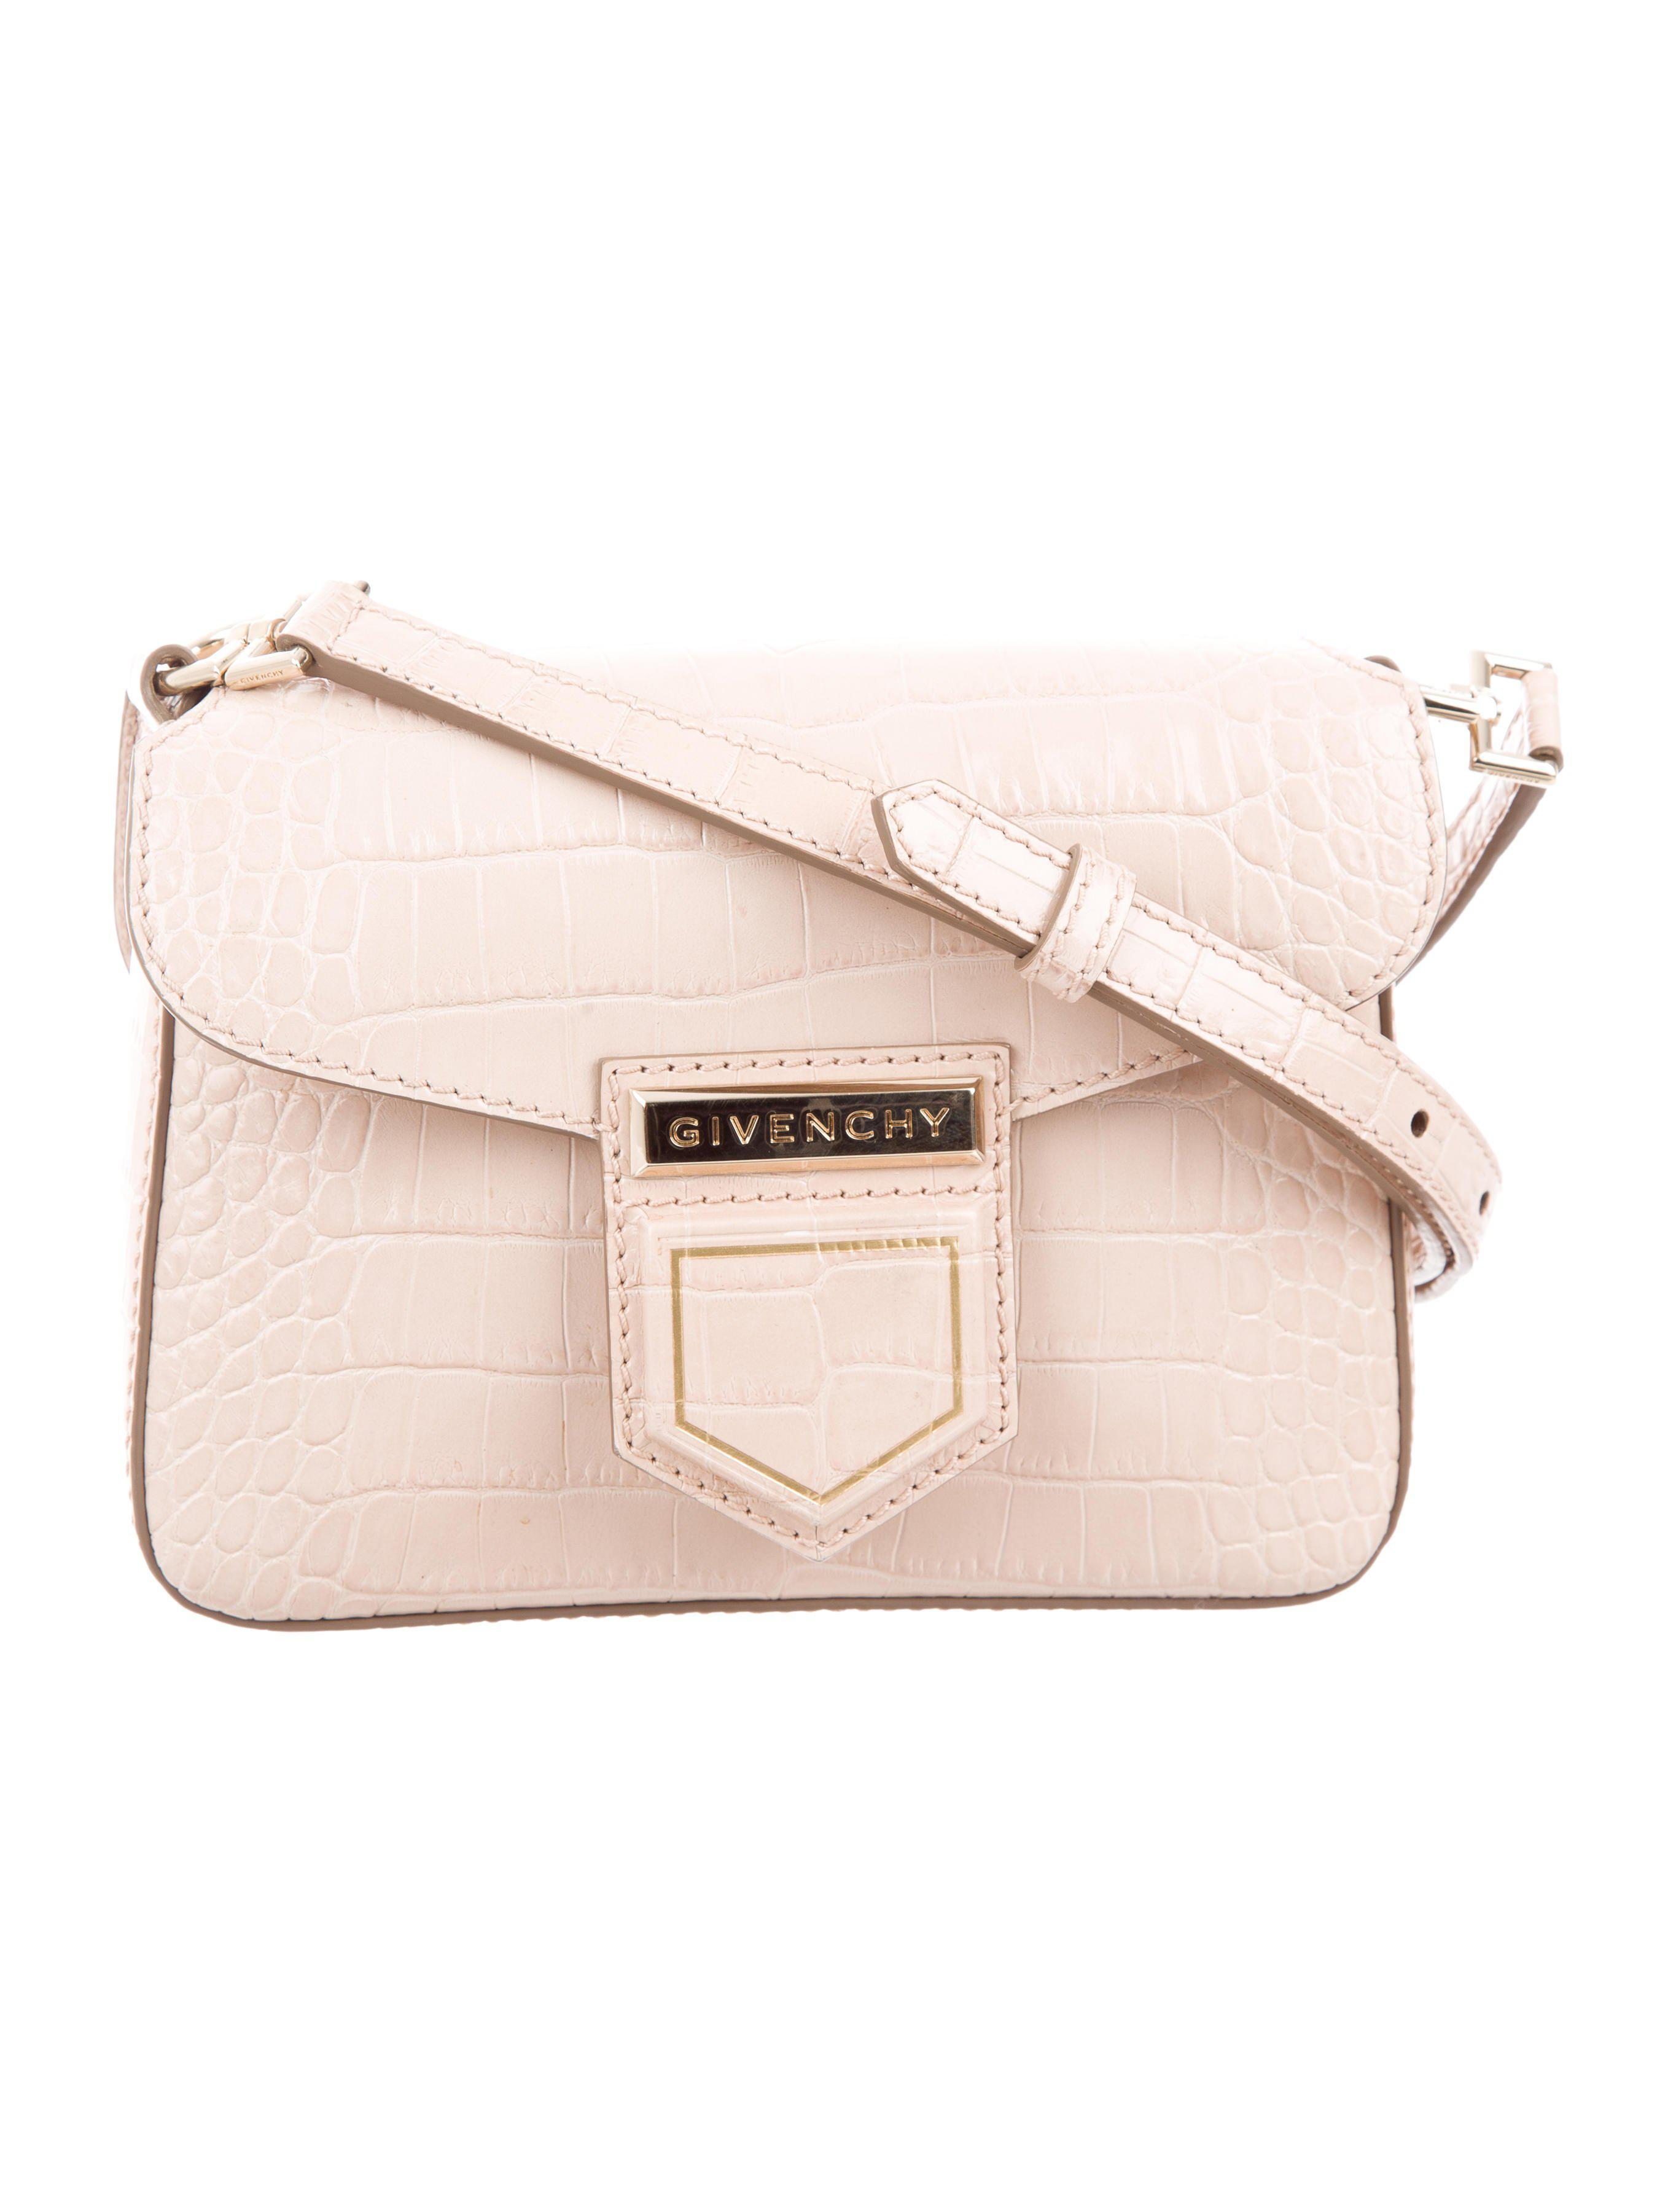 Lyst - Givenchy 2017 Small Nobile Crossbody Bag Pink in Metallic 70146a6fae400